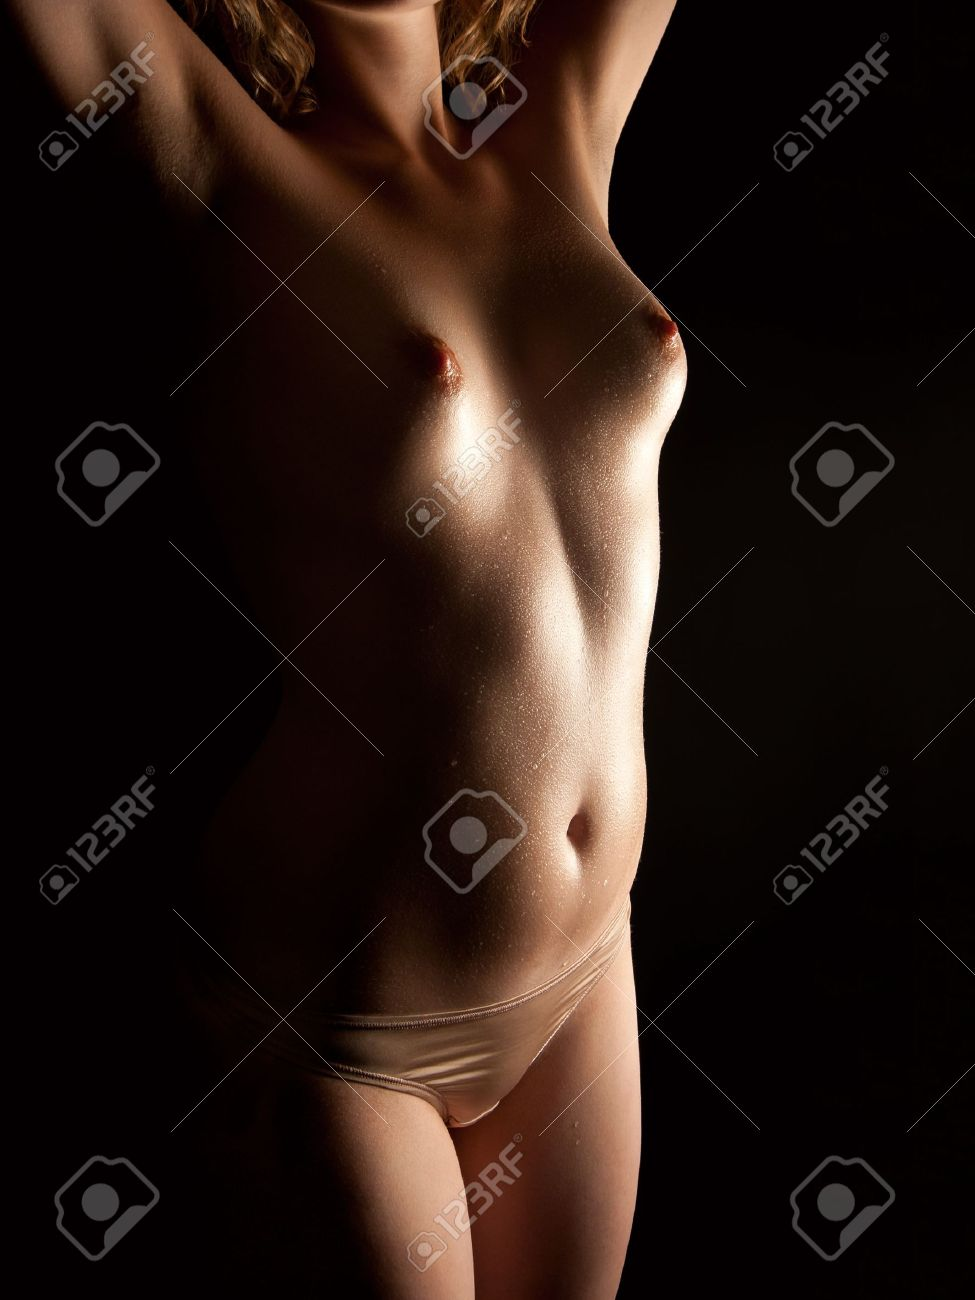 Nude of a beautiful young woman with wet body in front of black background Stock Photo - 10799033